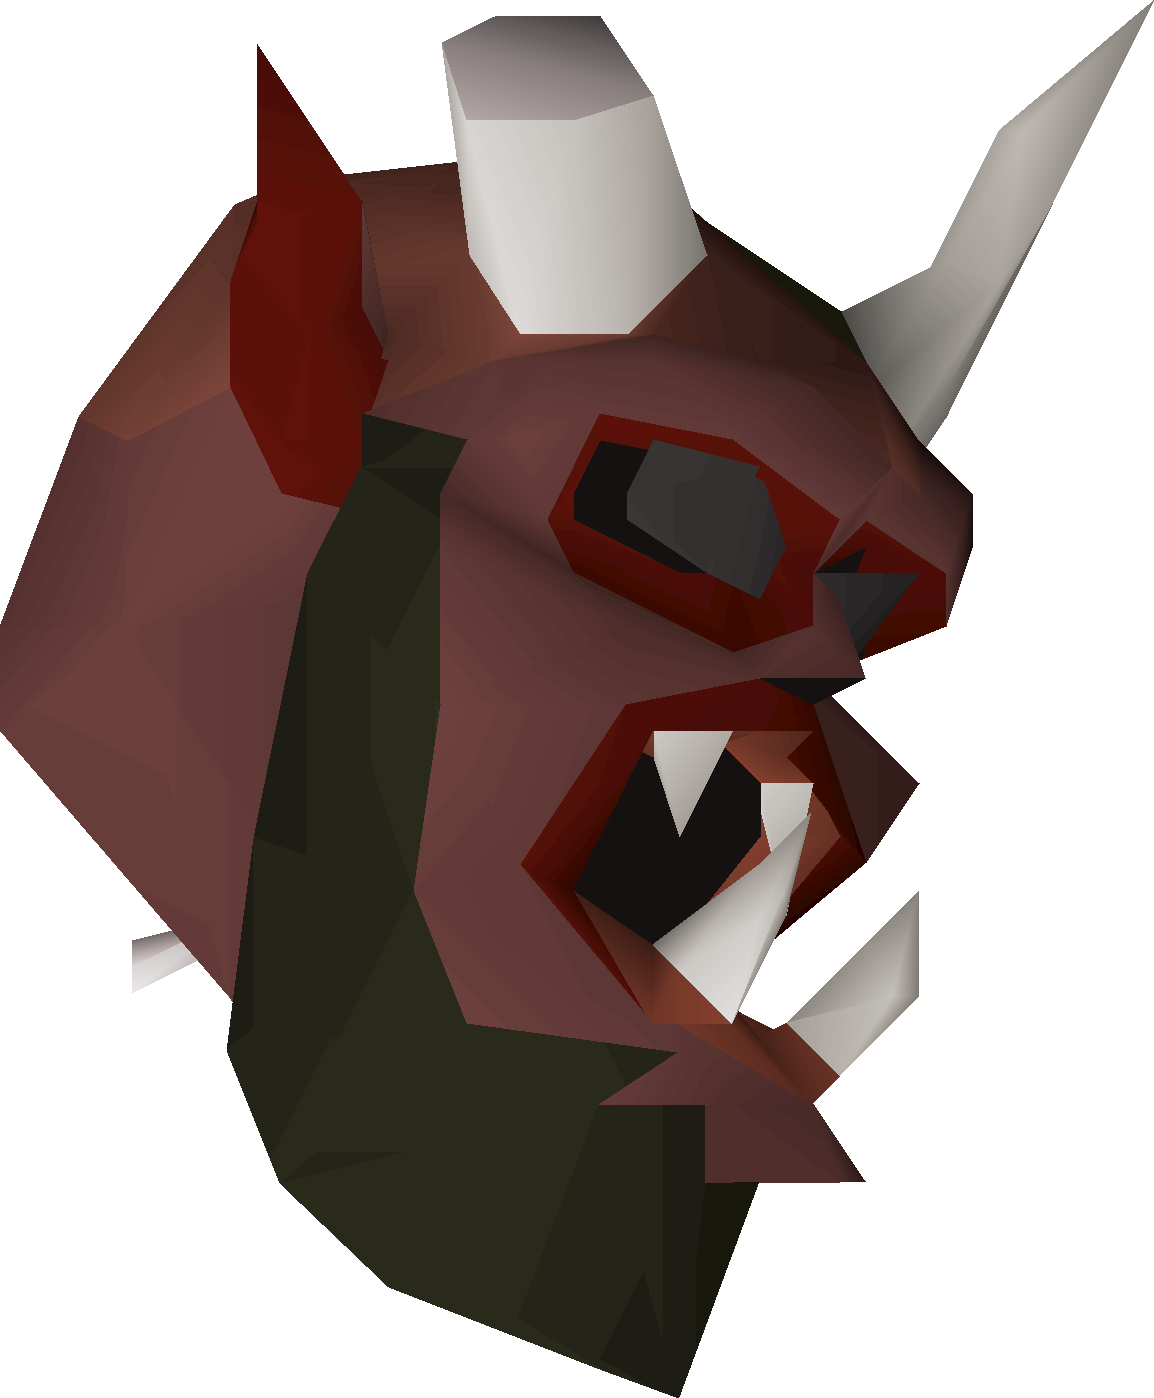 Ensouled Demon Head Osrs Wiki